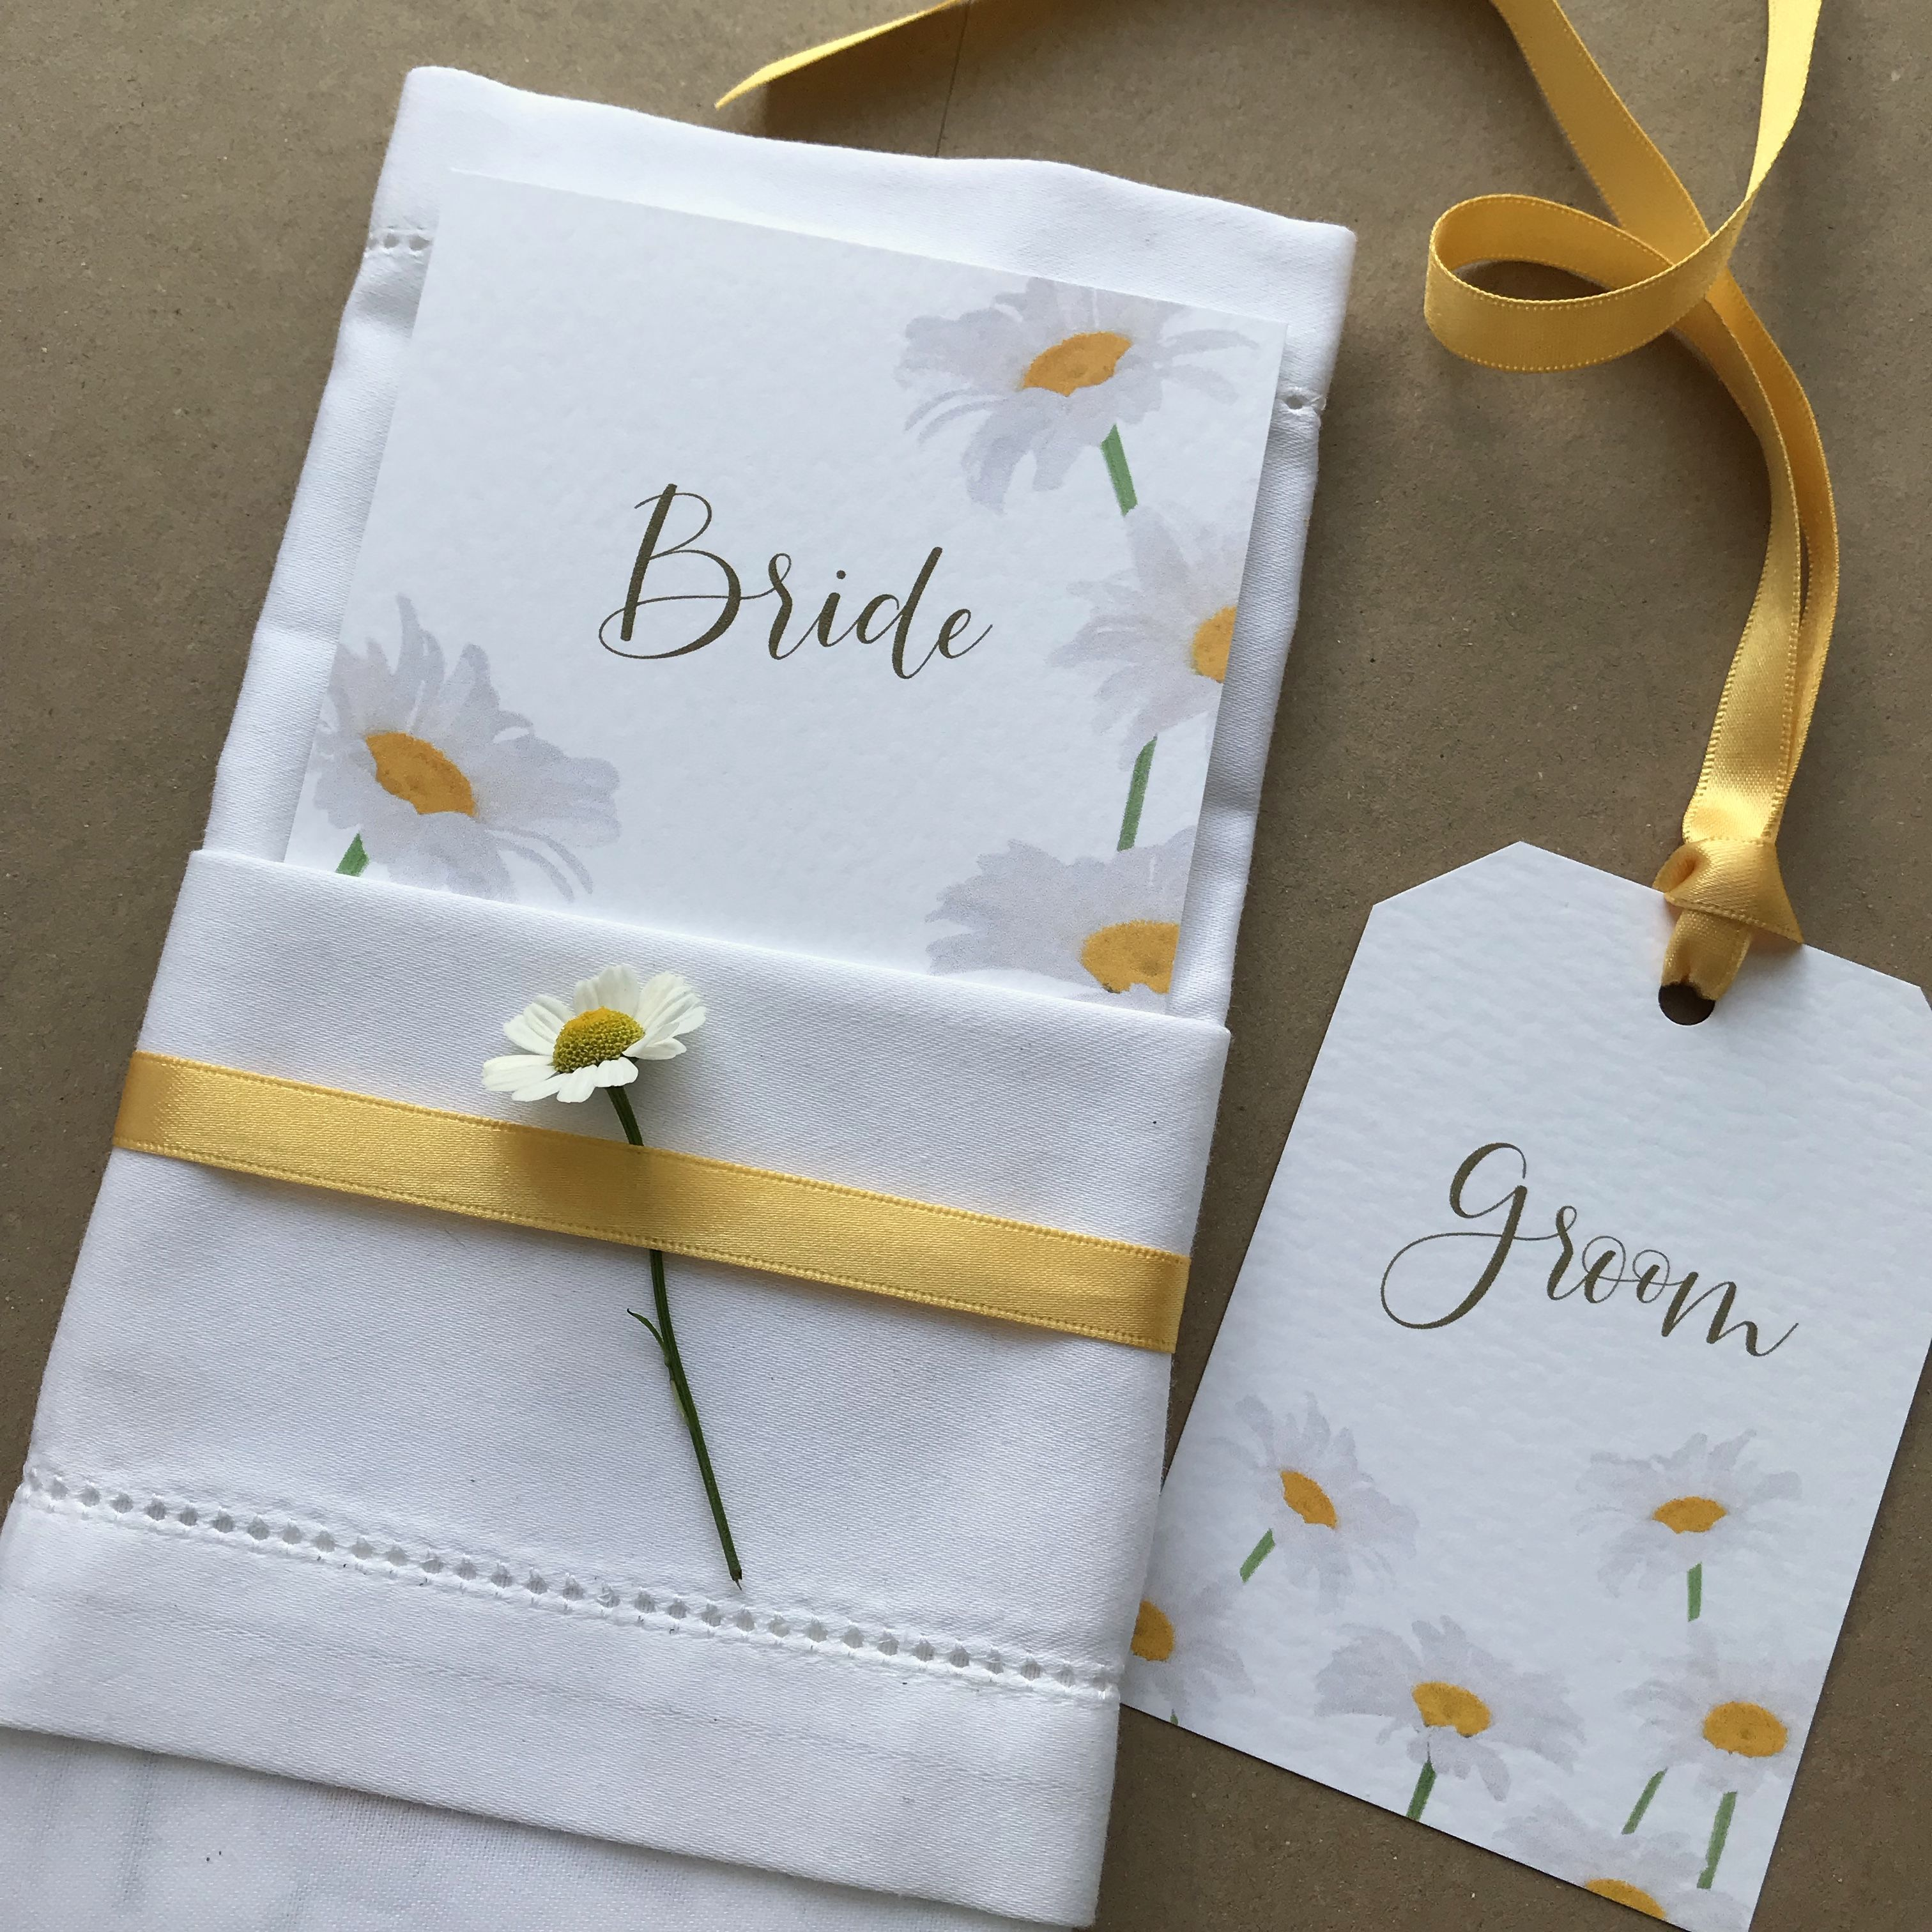 wedding place cards personalised with guest name  menu